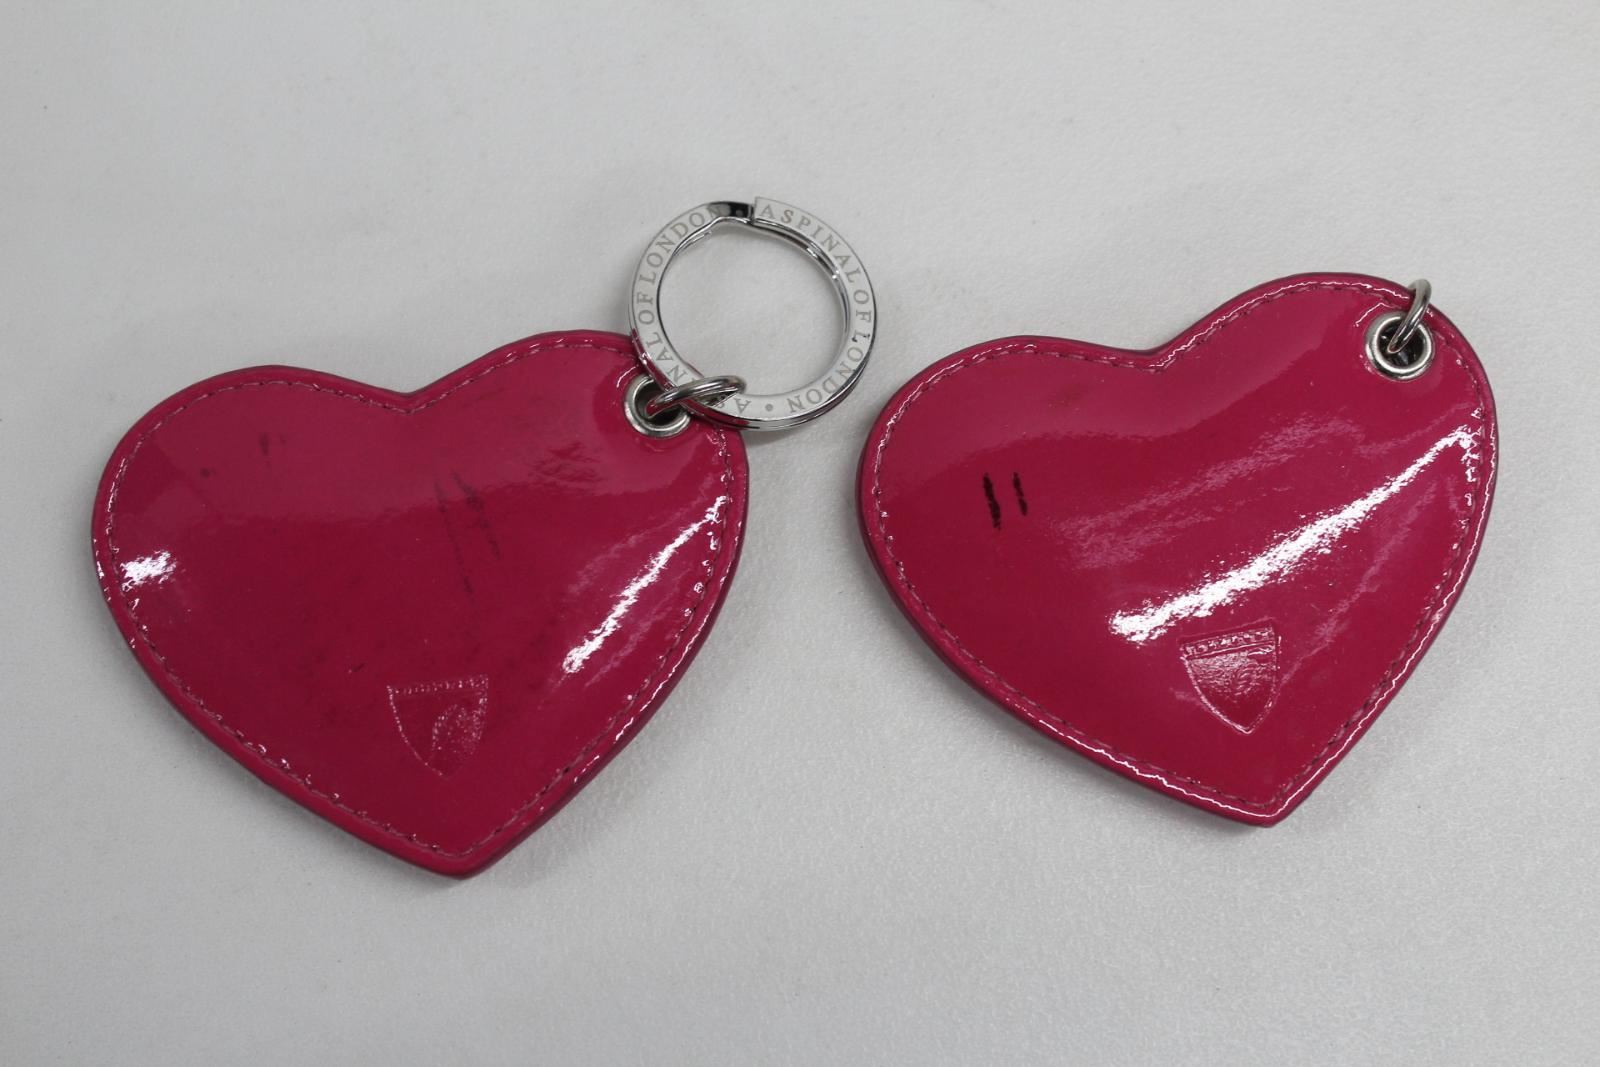 ASPINAL-OF-LONDON-Ladies-Heart-Shaped-Leather-Pastel-Pink-Keyring-Fobs-NEW-2-Set